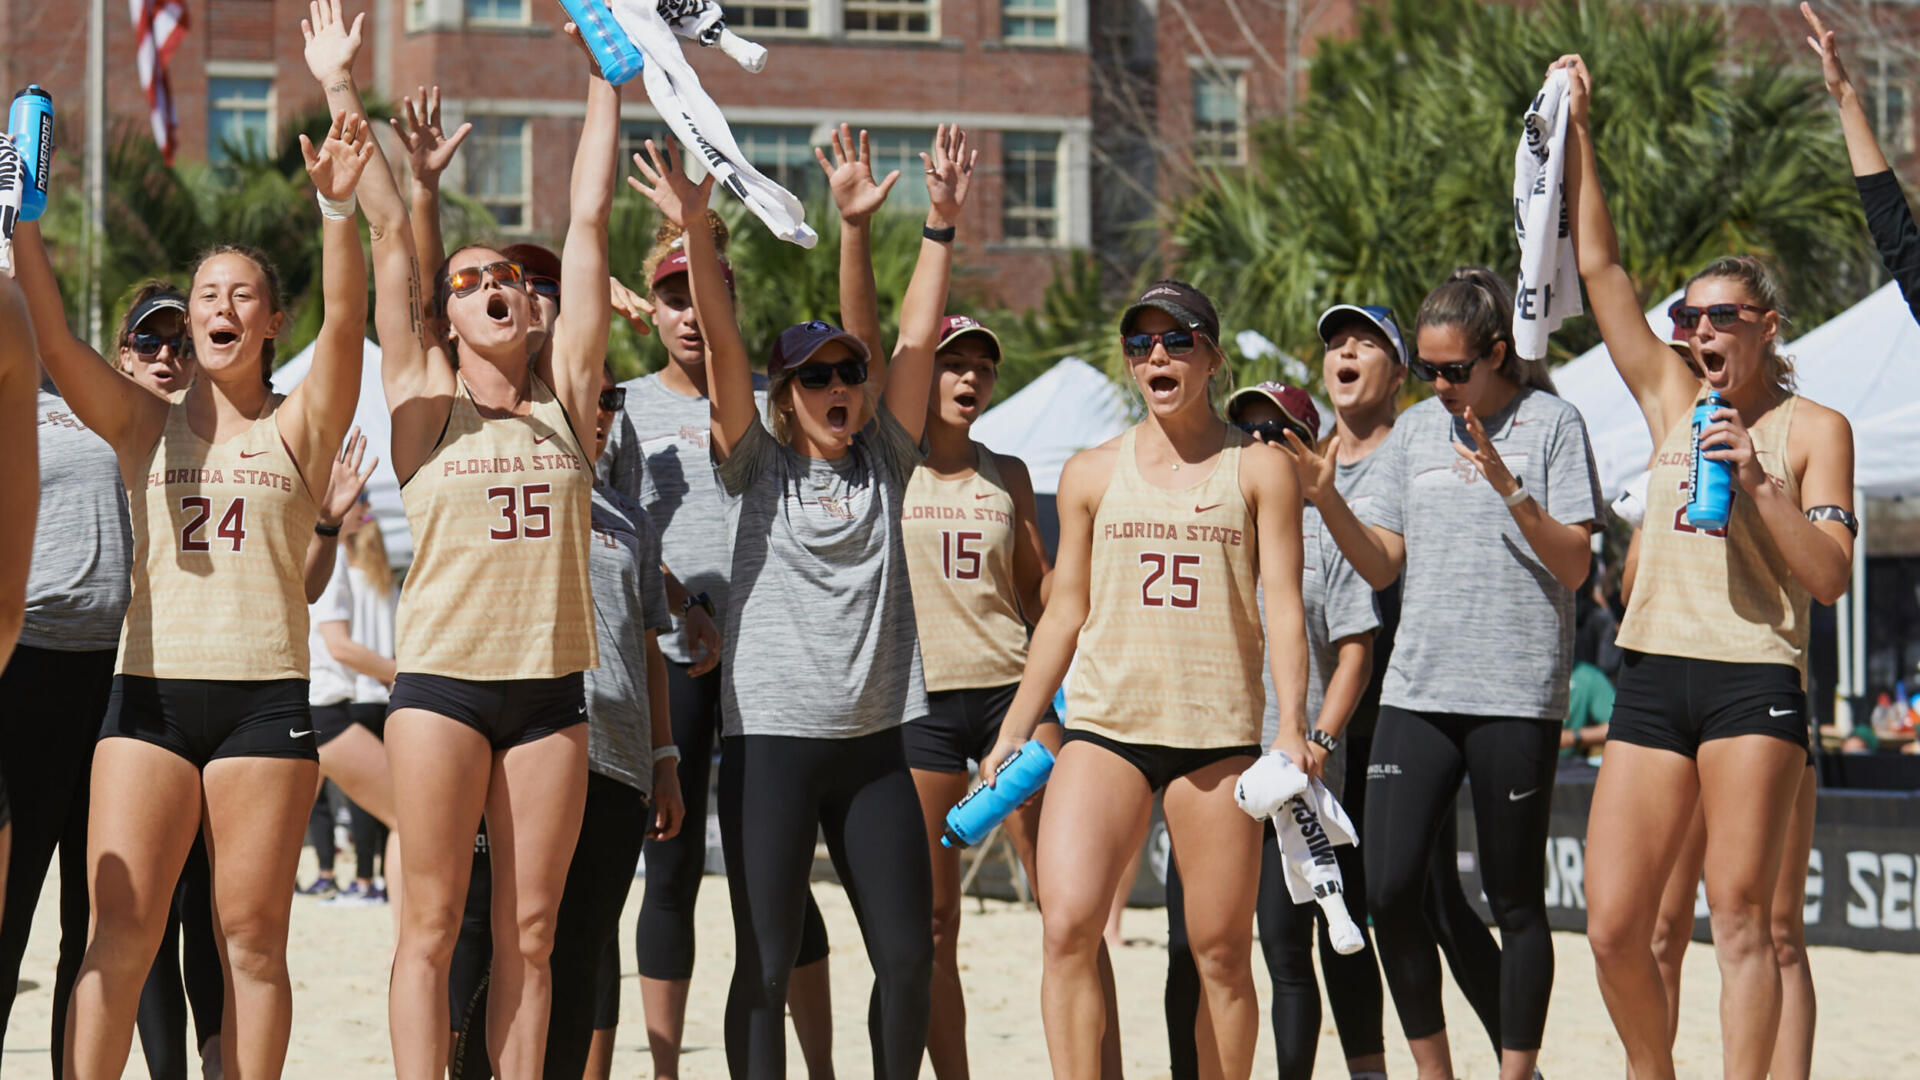 Beach Volleyball Wins Director's Cup for Service